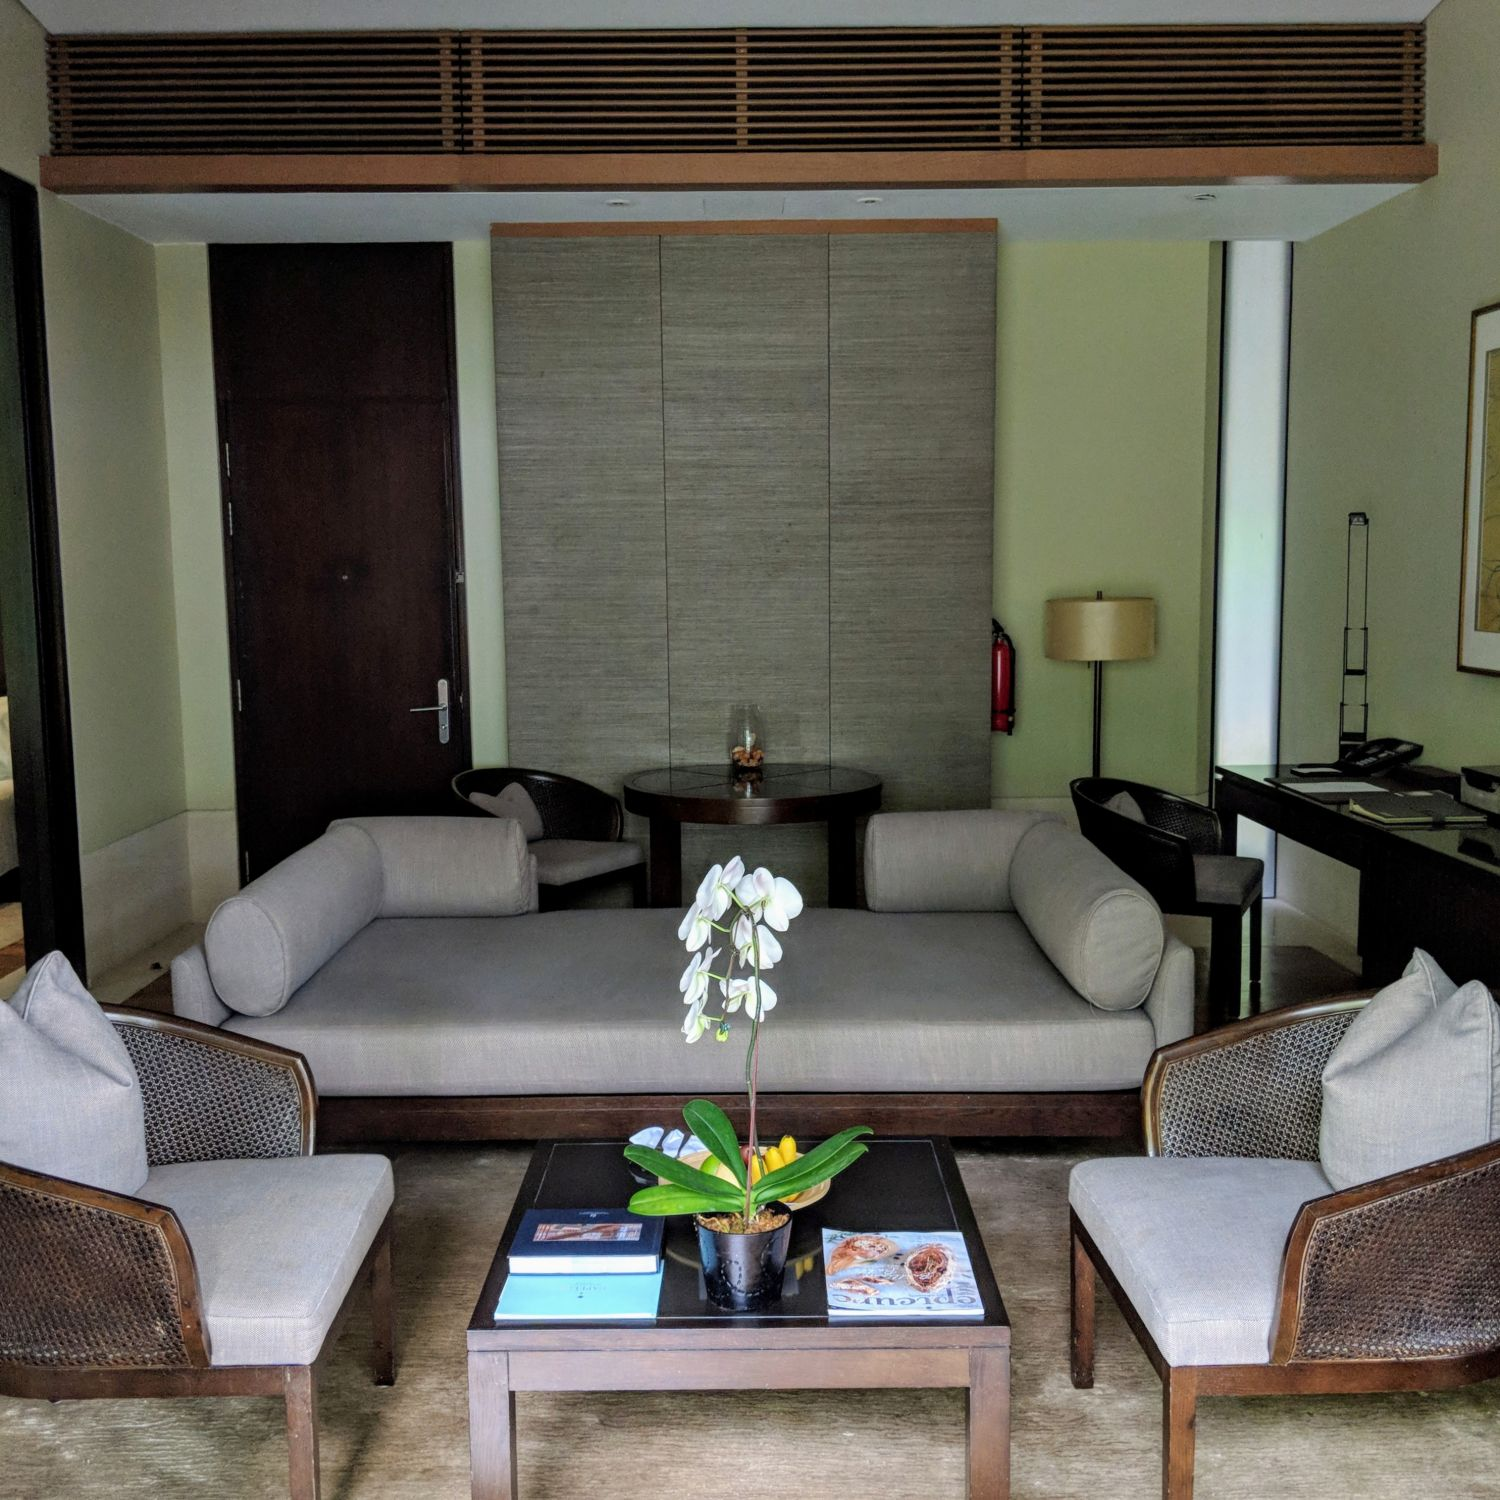 capella singapore One Bedroom Garden Villa living room